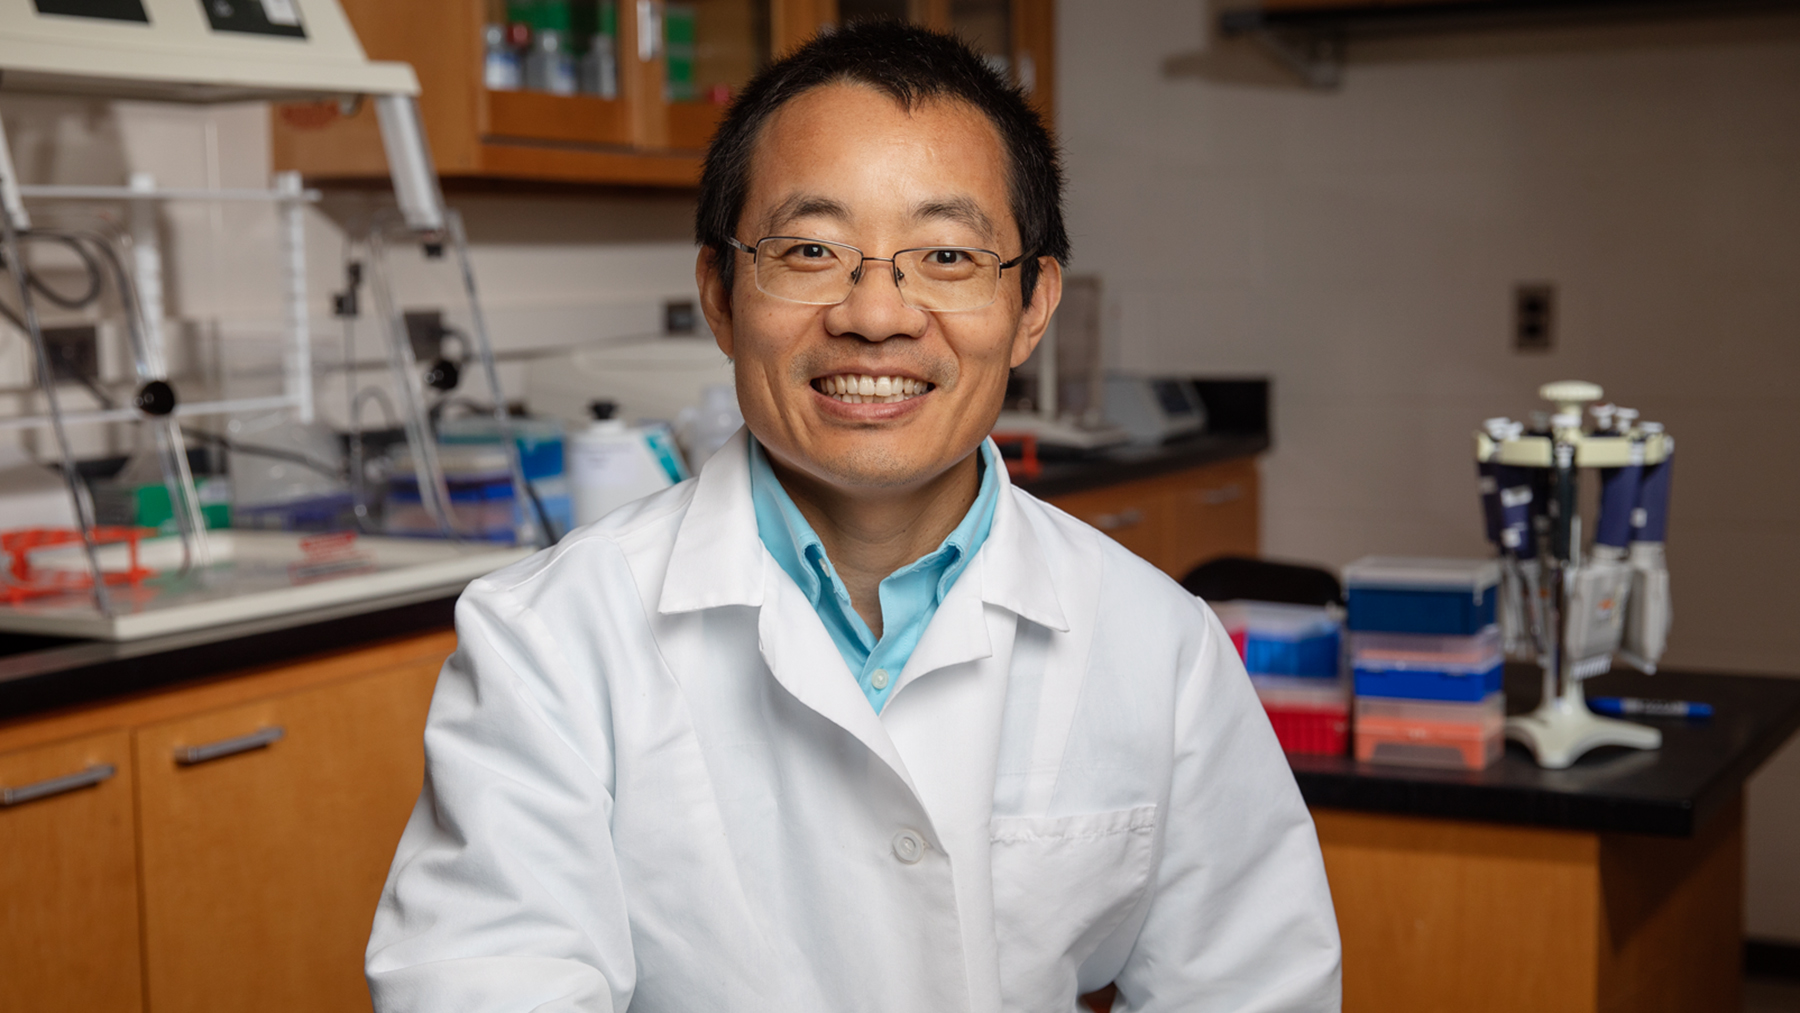 Dr. Leyi Wang and the Veterinary Diagnostic Laboratory have played a key role in diagnosing coronavirus infection in animal species in zoos across the country. Photo by Leslie Stauffer